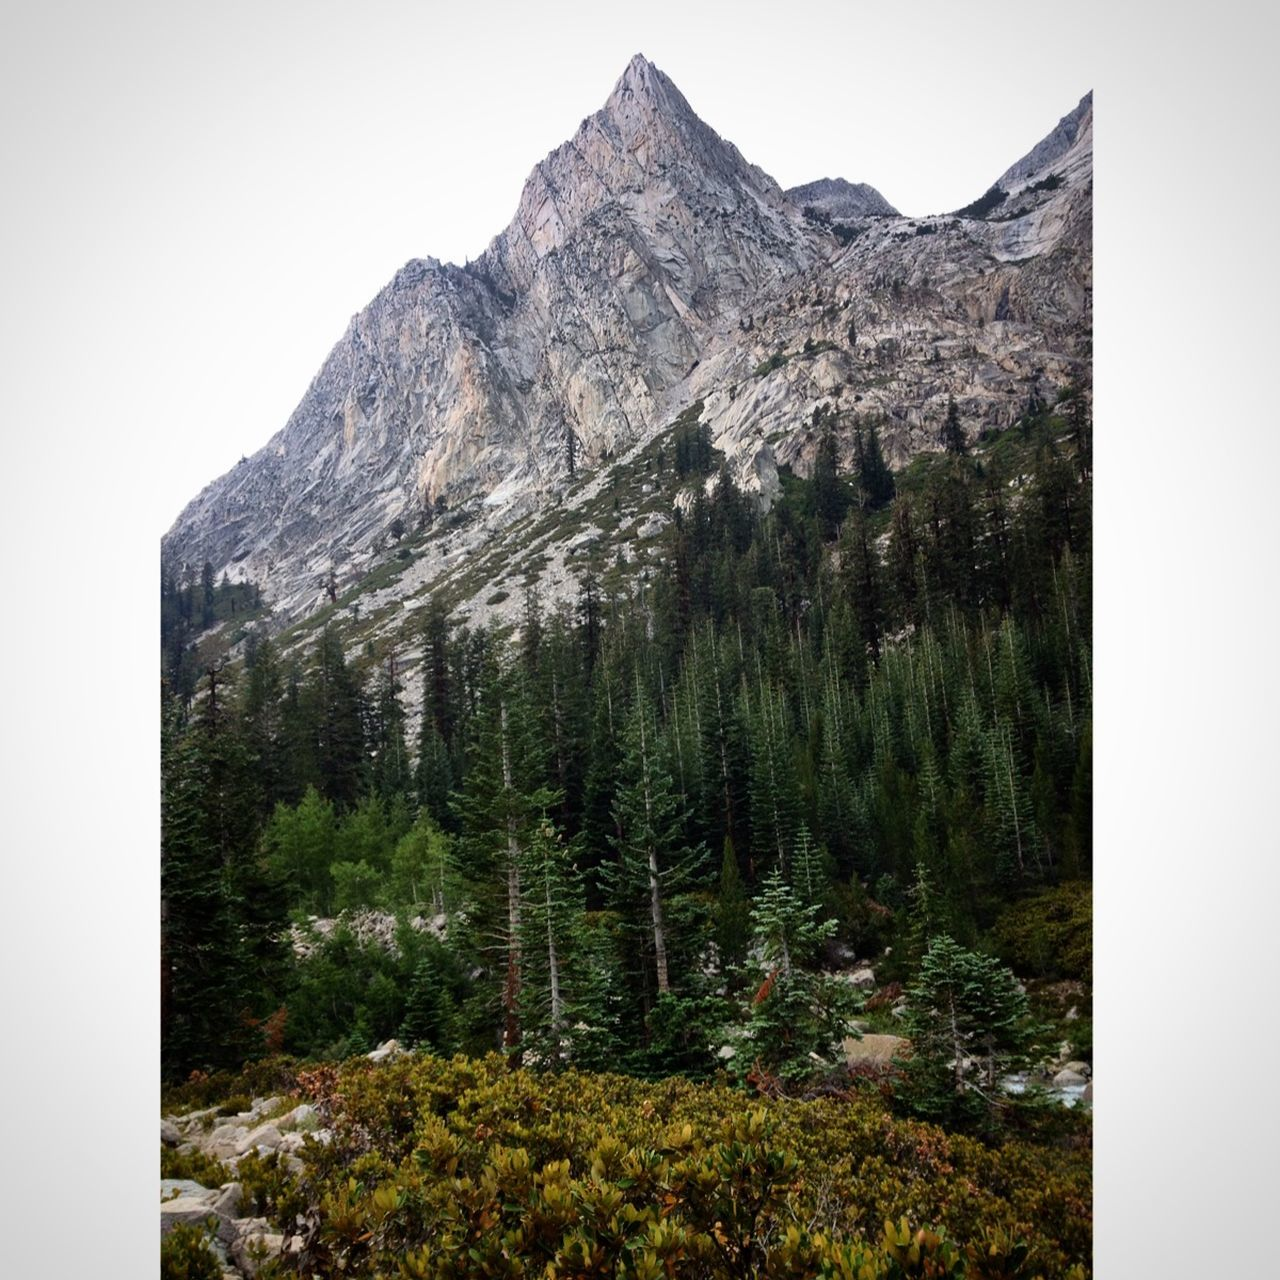 Eastern Sierra LeConte Canyon JMT Backpacking Hiking Mountains IPSLandscape The Adventure Handbook The Great Outdoors - 2015 EyeEm Awards